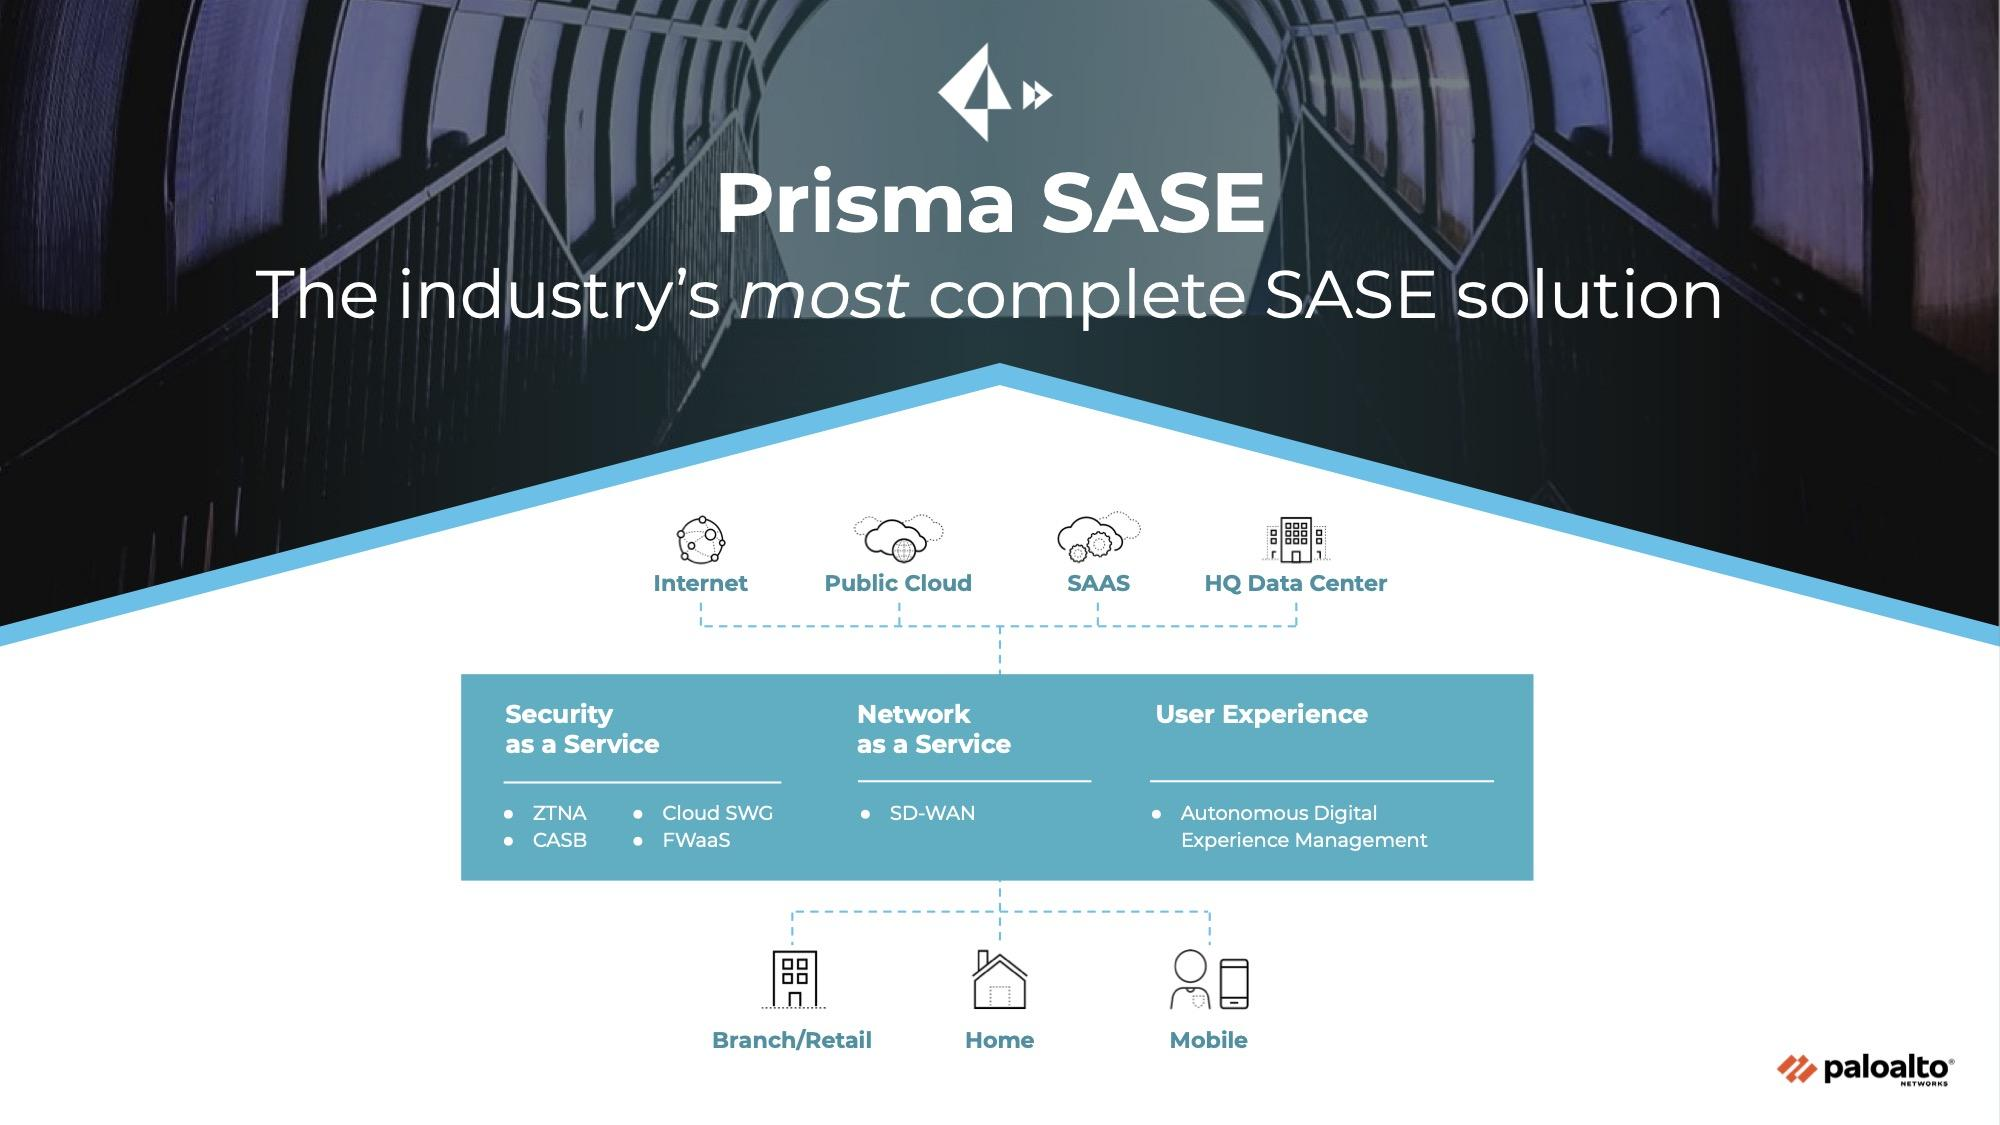 Introducing Prisma SASE: The Industry's Most Complete SASE Solution